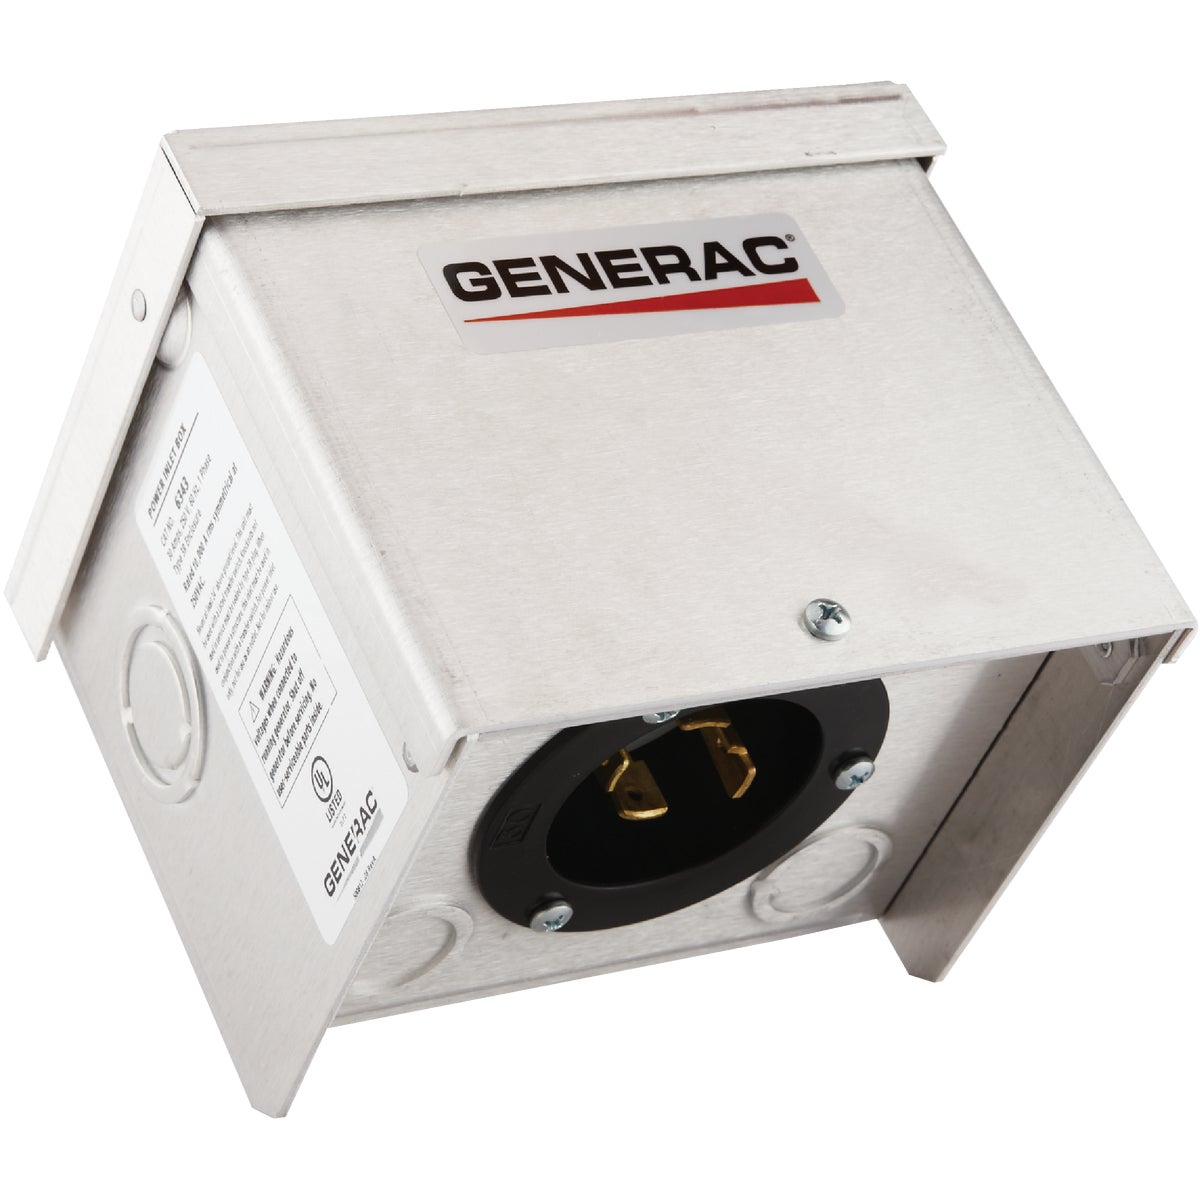 30 A AL POWER INLET BOX - 6343 by Generac Power System